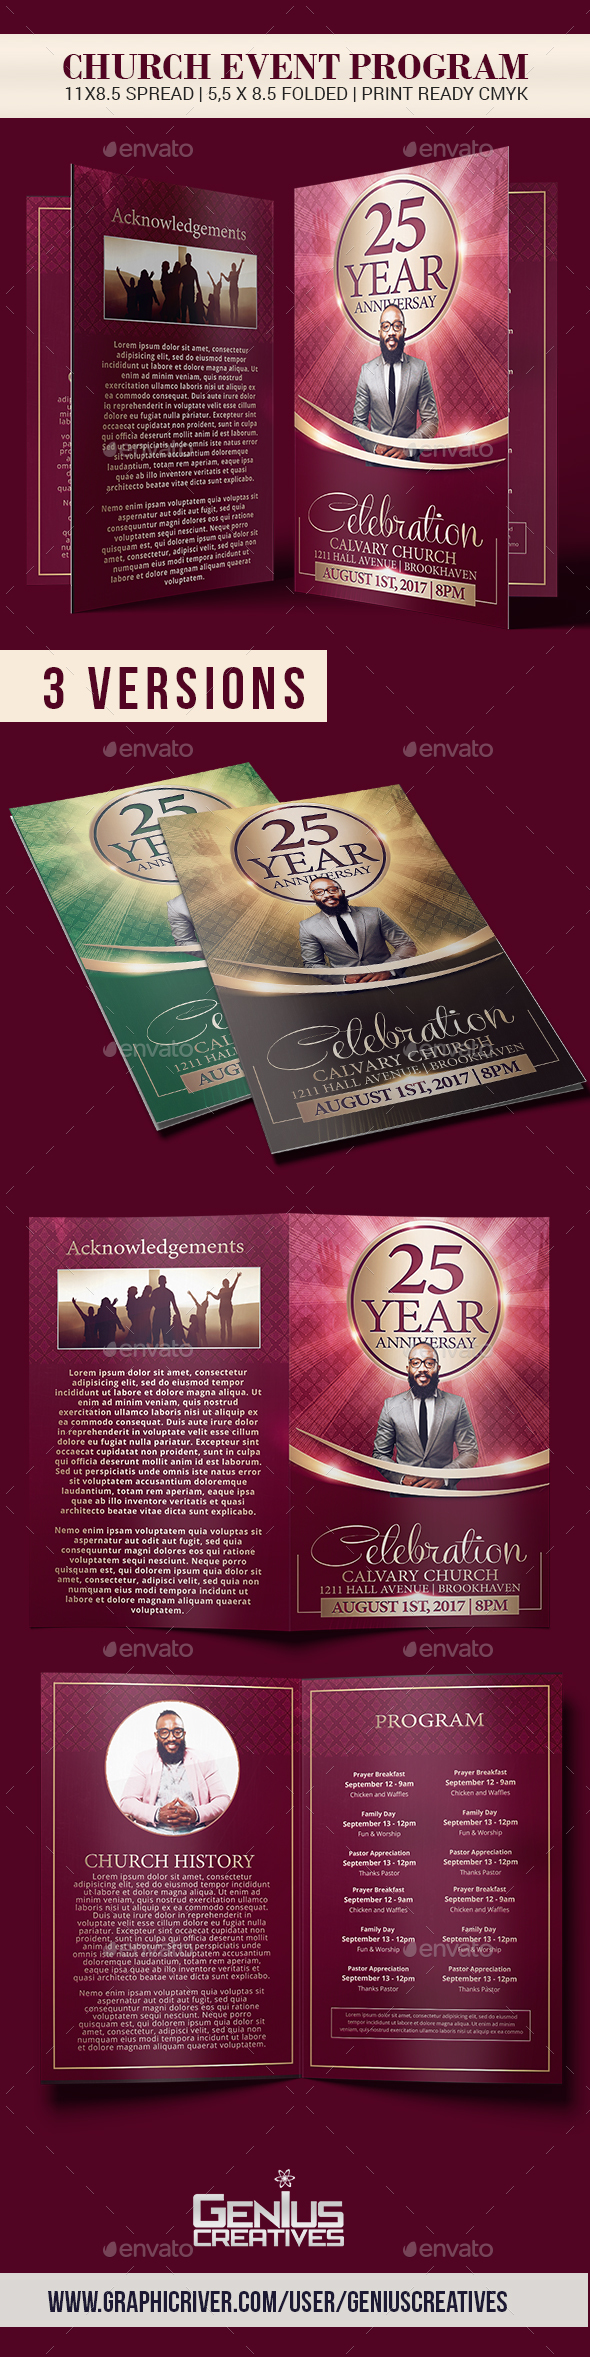 church brochure templates - church anniversary brochure template by geniuscreatives